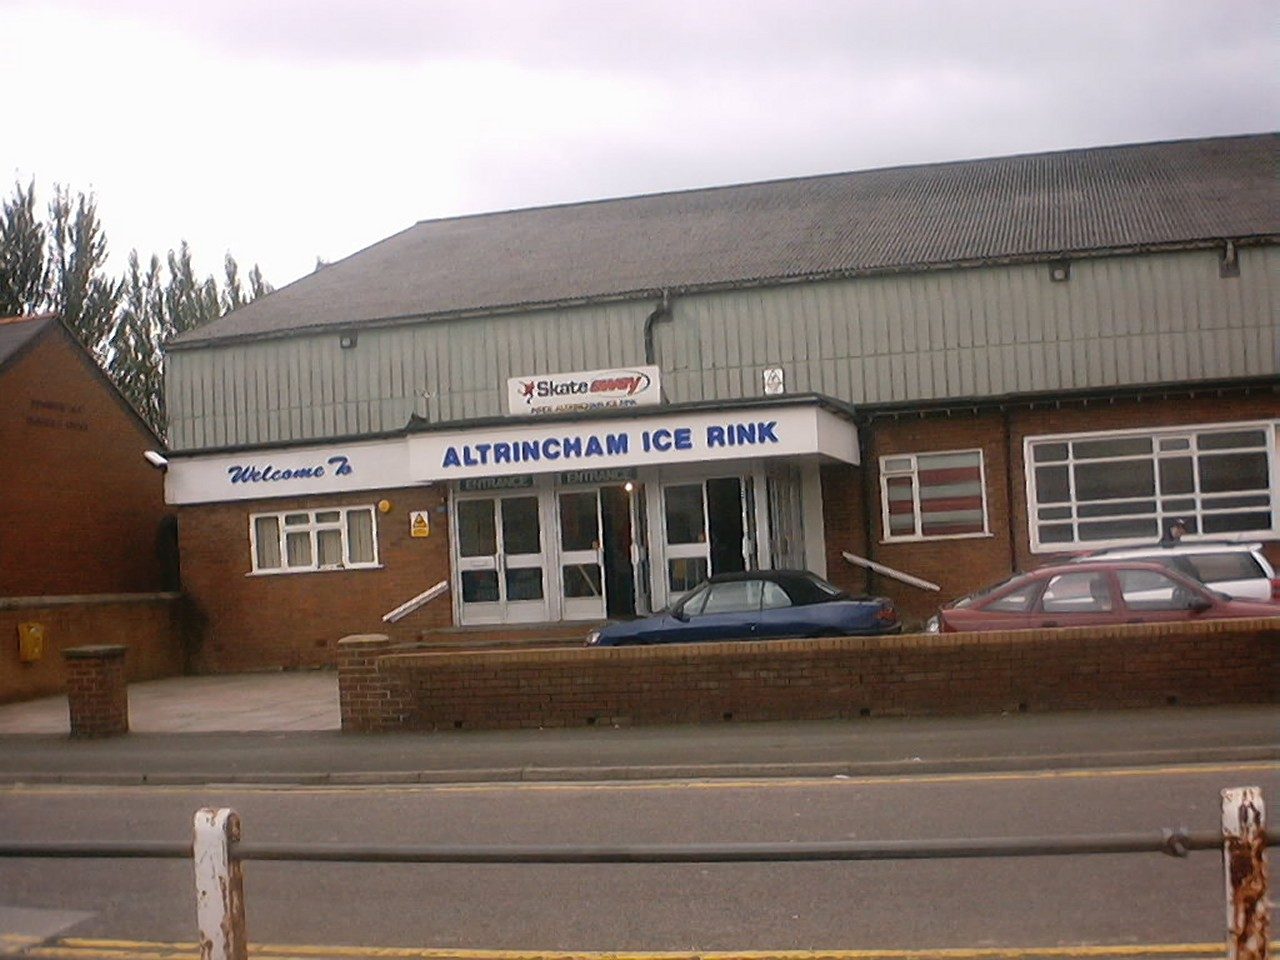 The Old Altincham Ice Rink